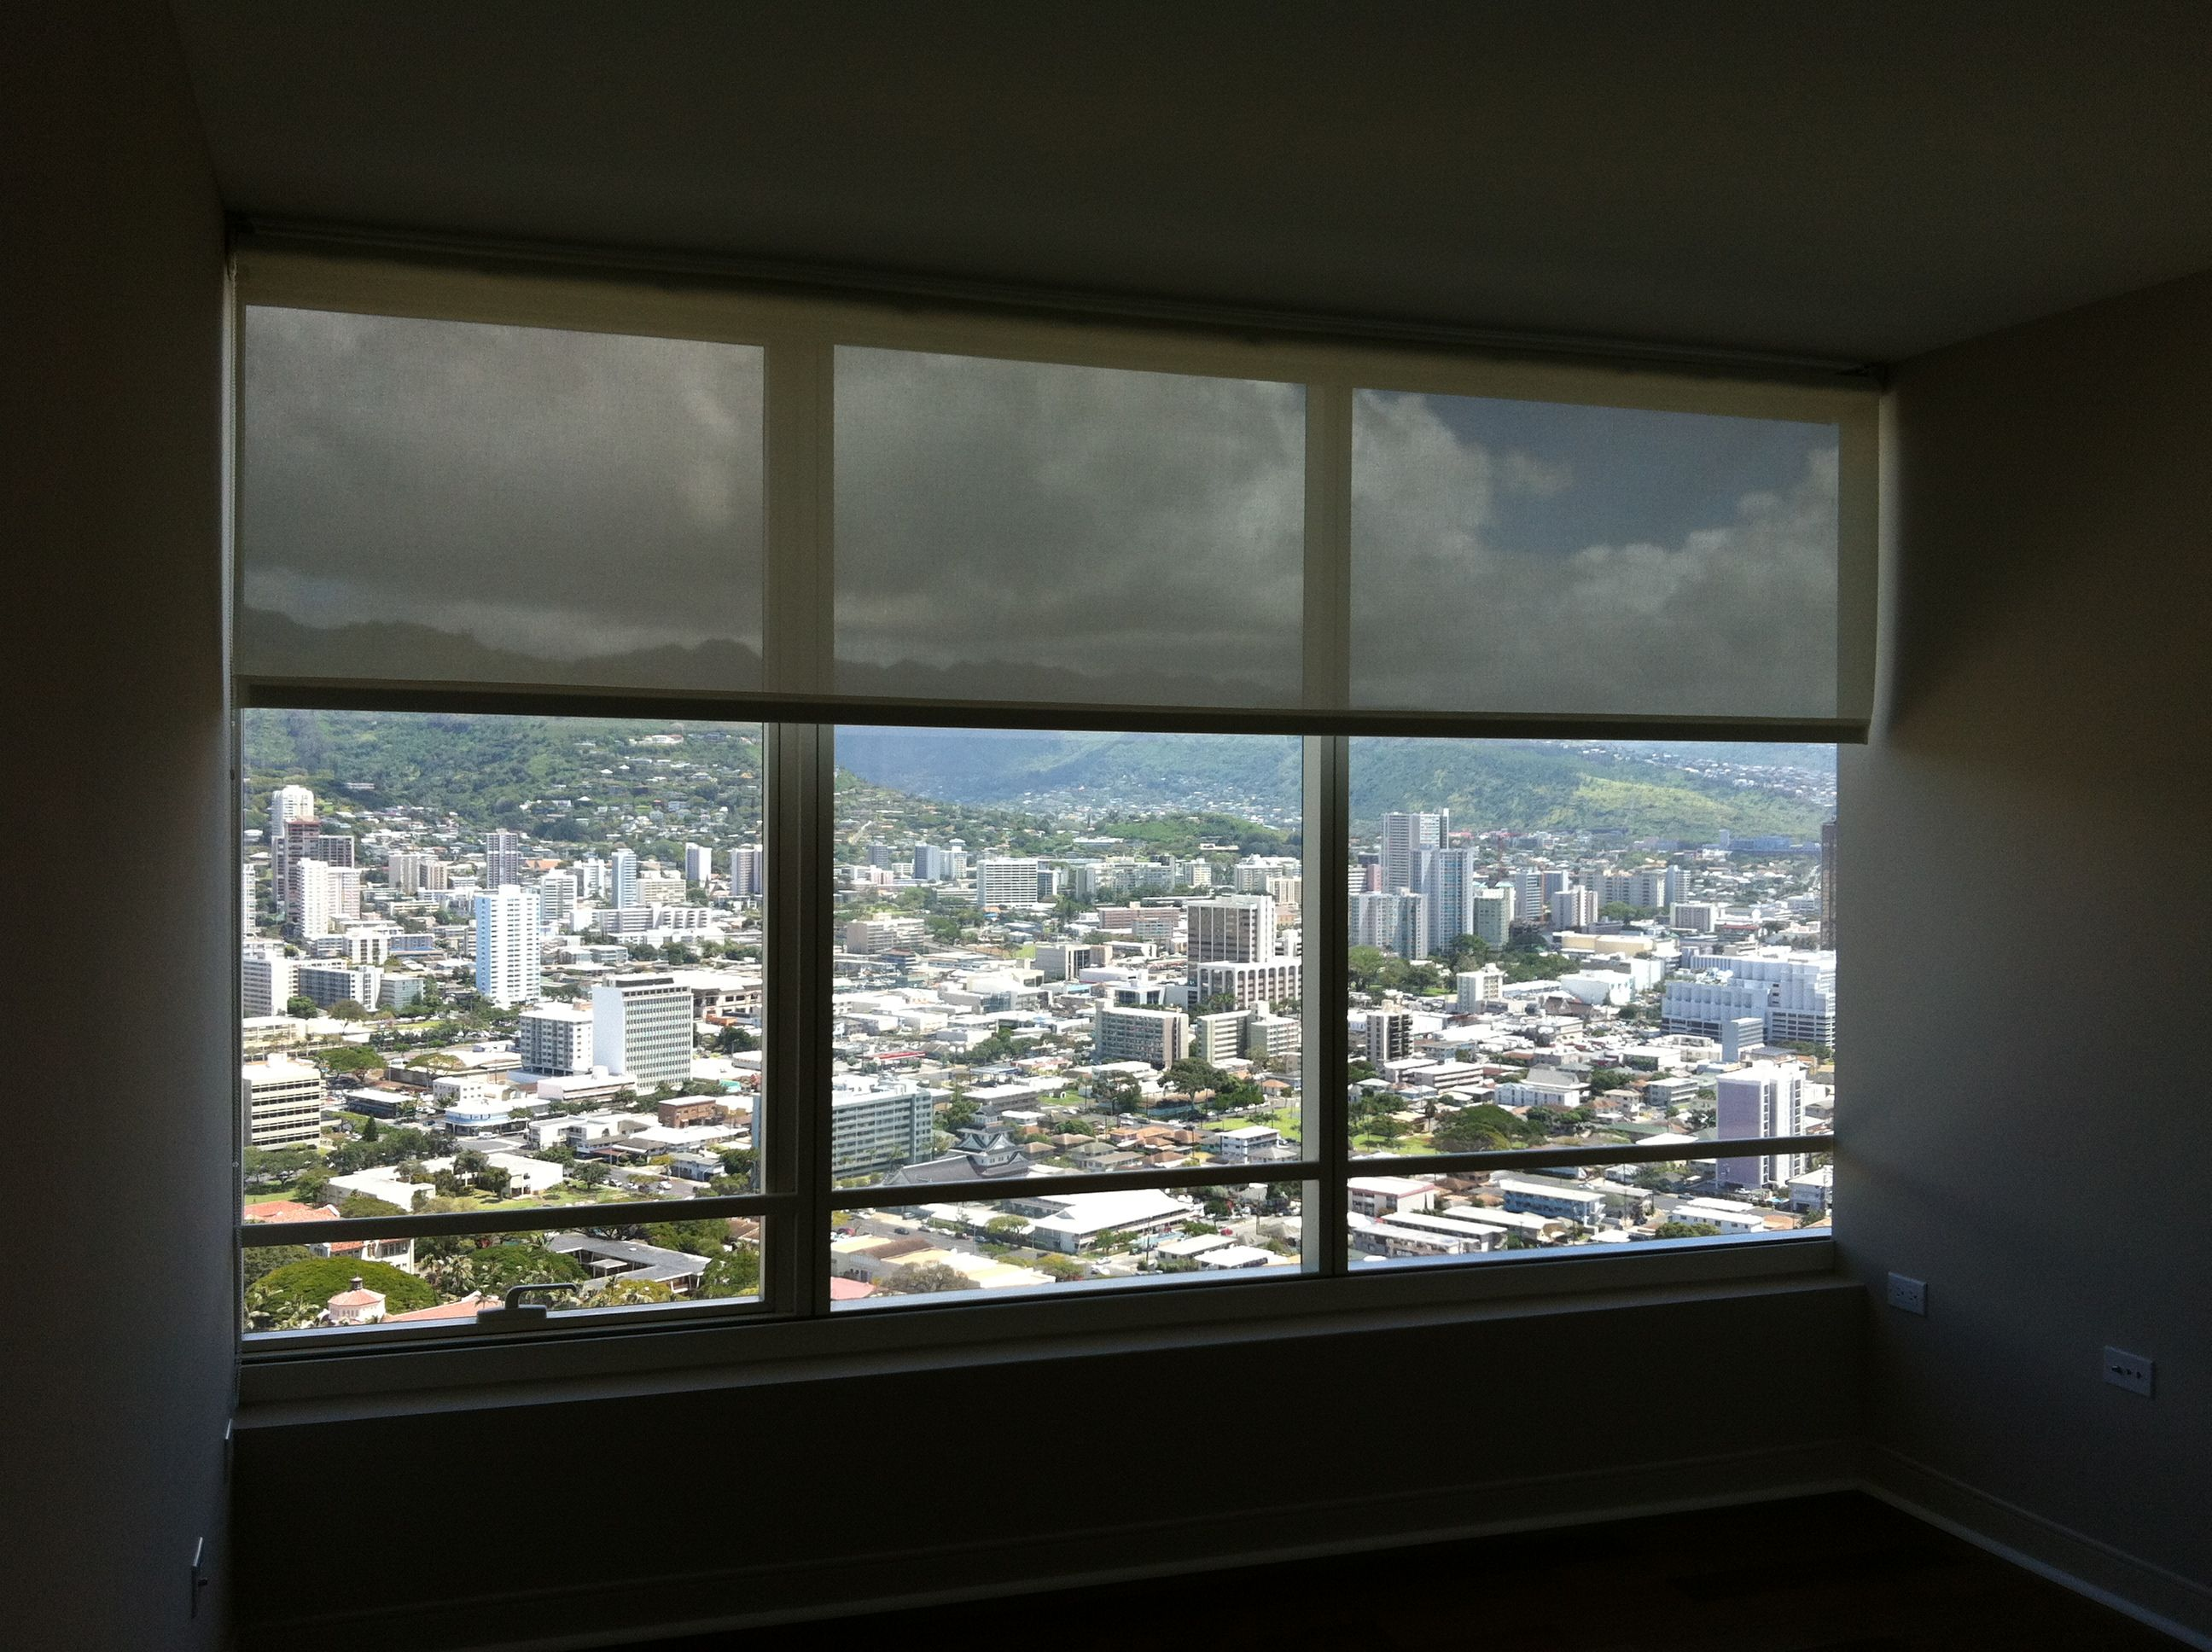 PERFORATED VINYL ROLLER SHADES - Google Search